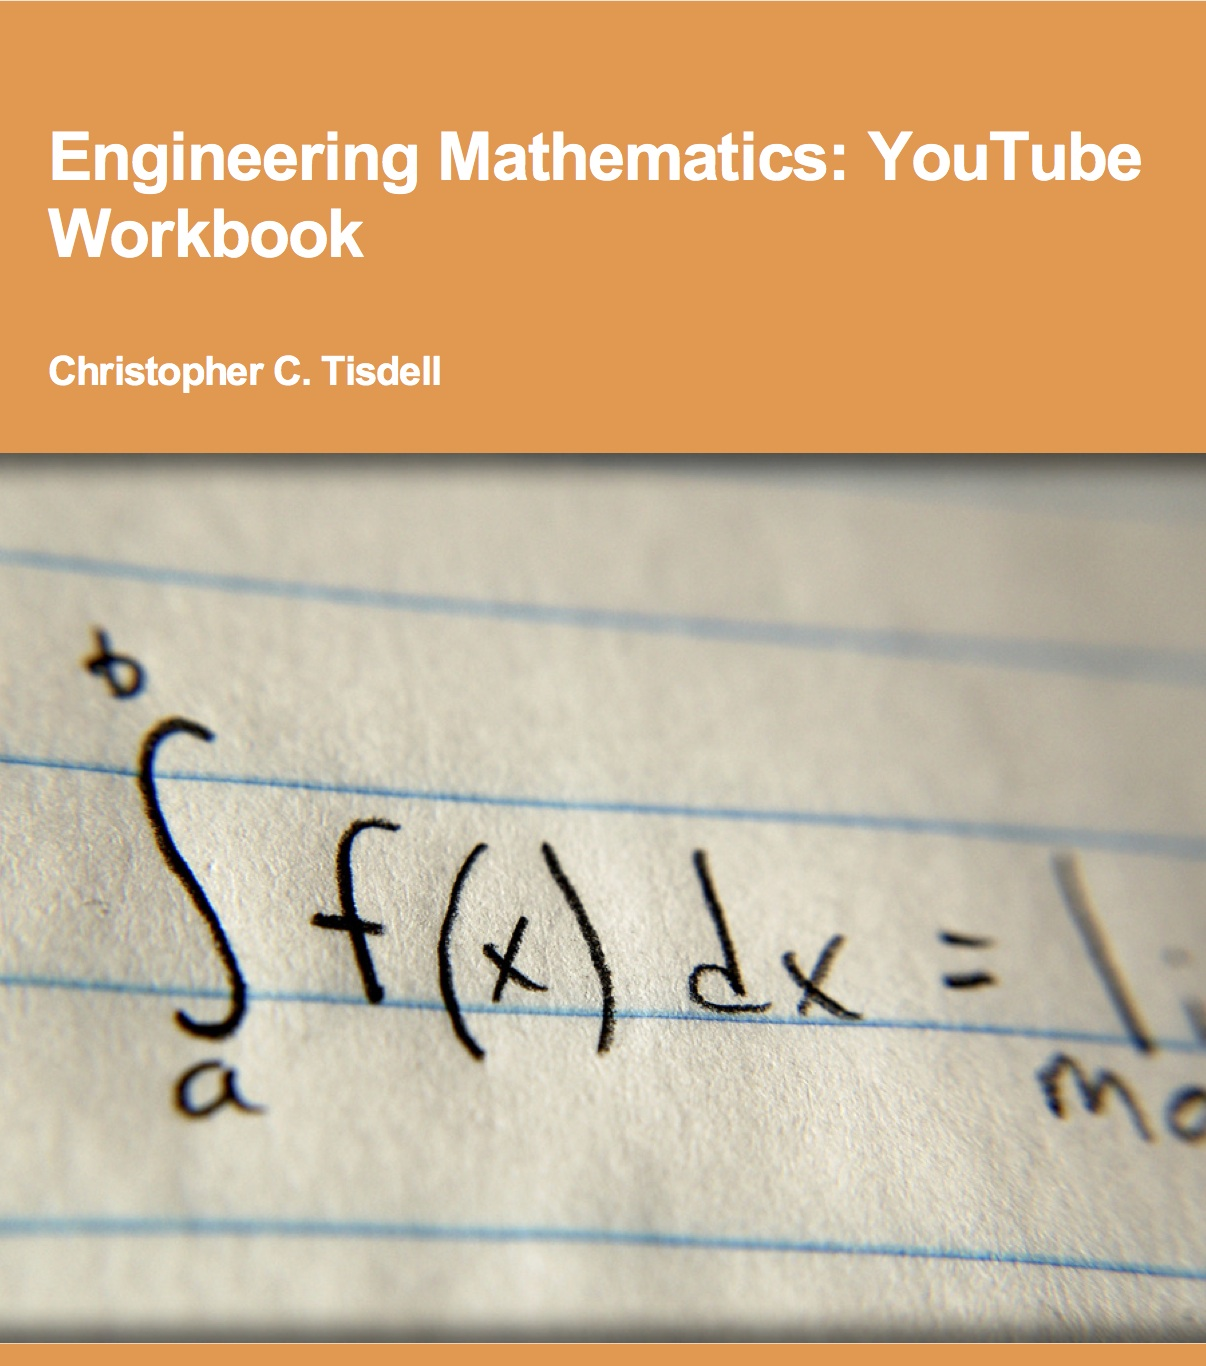 Engineering Mathematics: YouTube Workbook